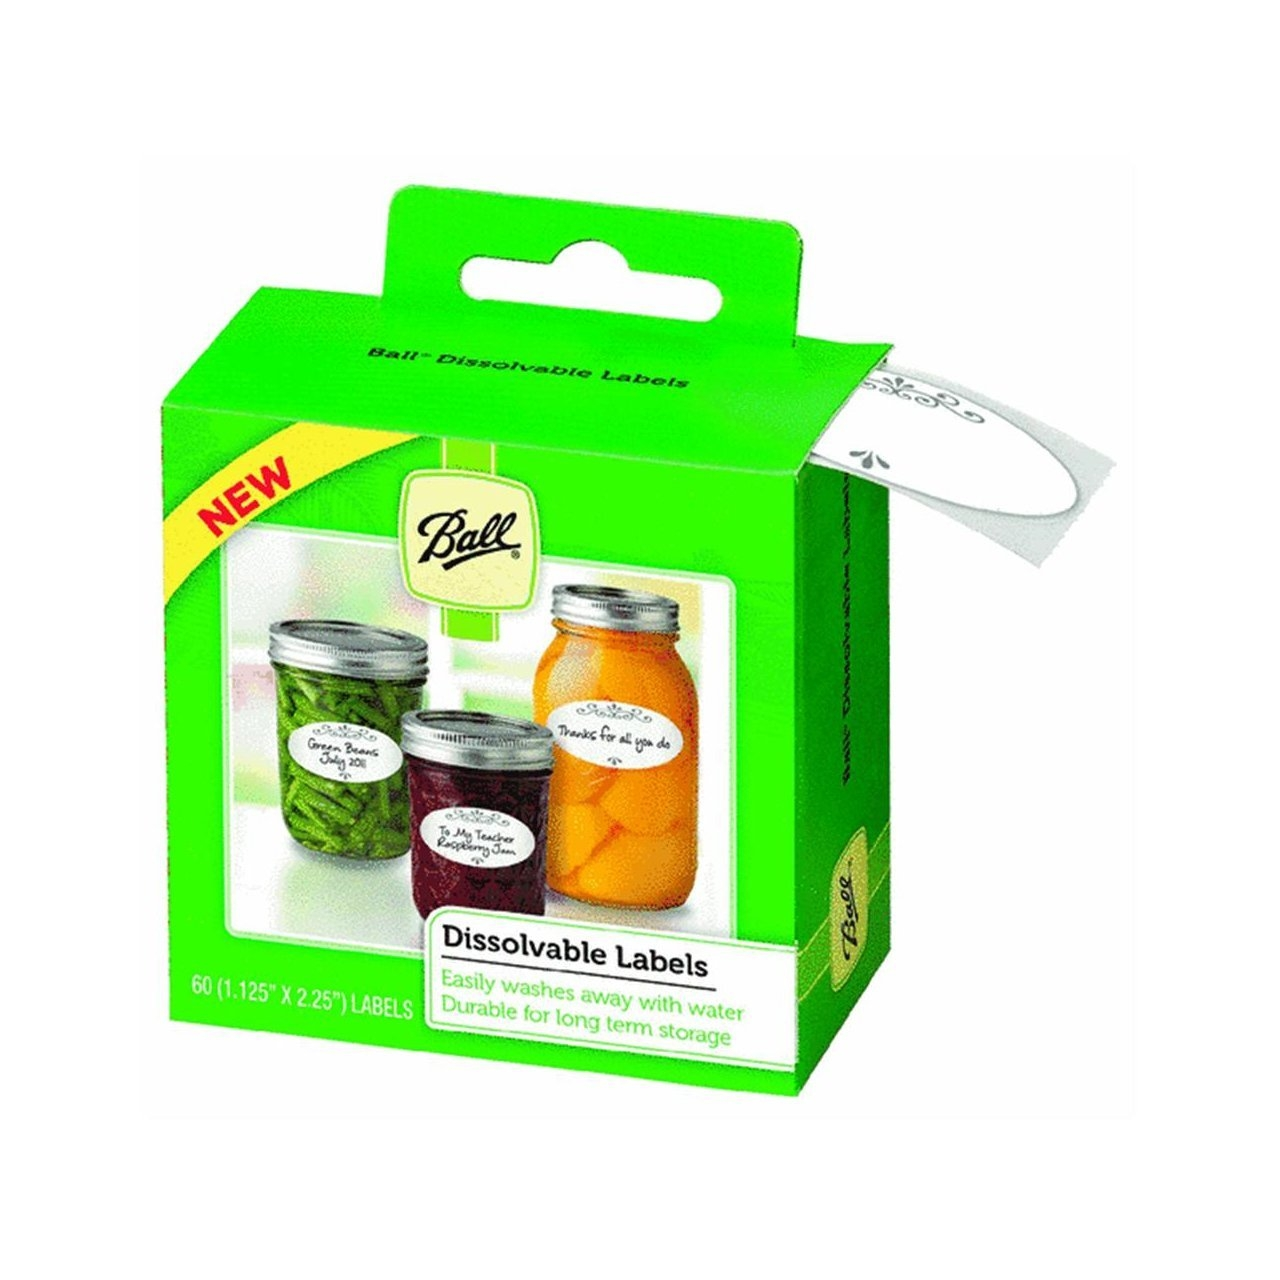 Ball Dissolvable Canning Labels 60labels each, Pack of 6 by Jarden Home Brands